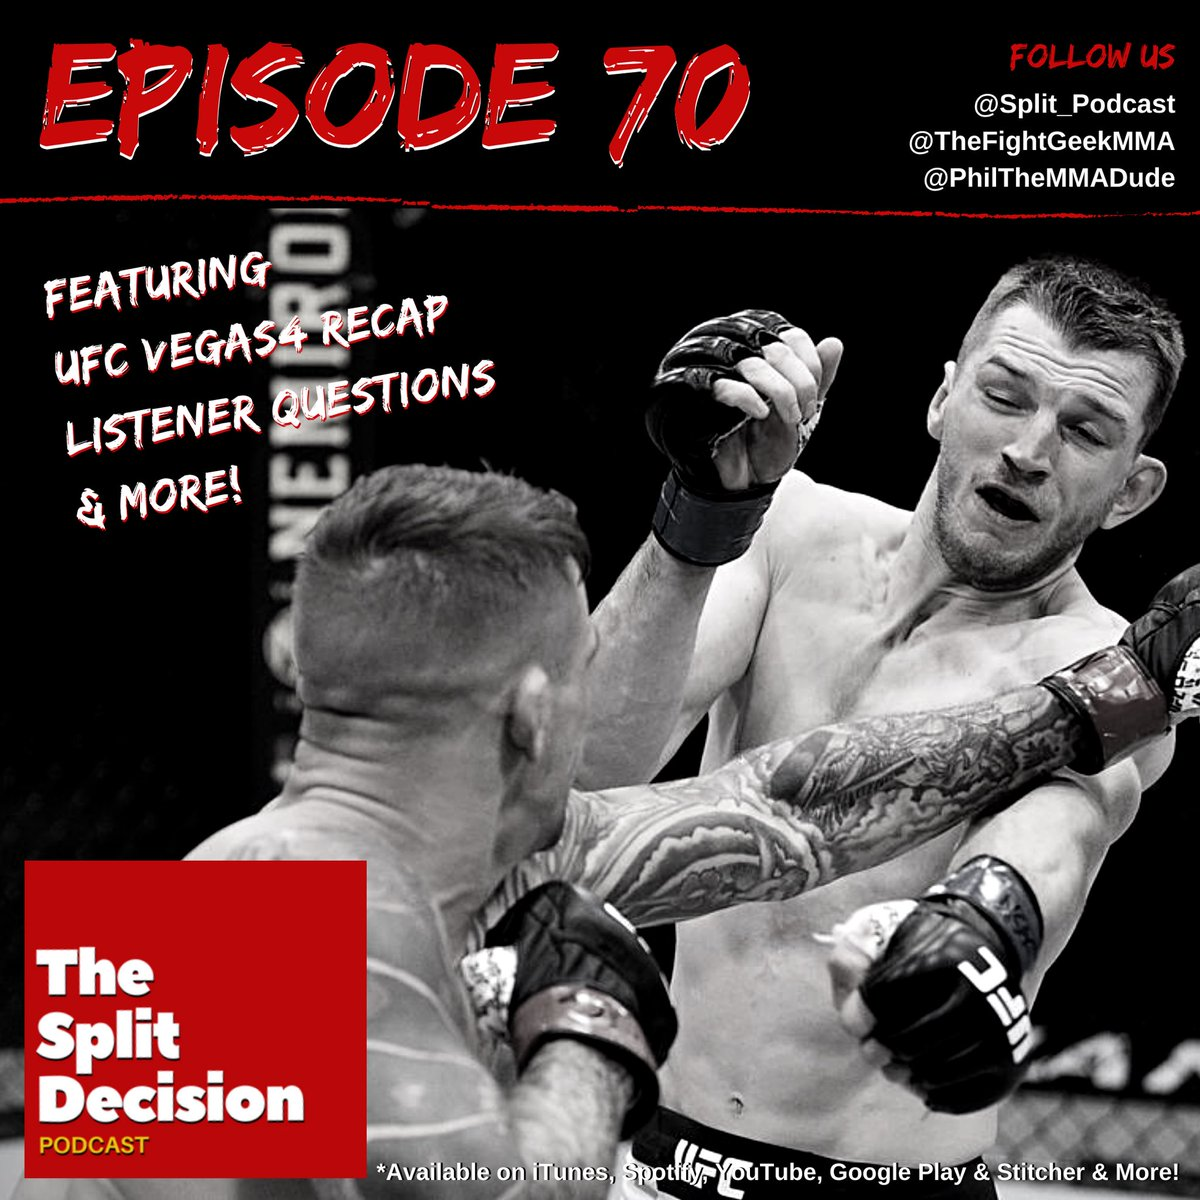 WE ARE BACK! 👊   Episode 70 of THE #SplitPodcast is available NOW featuring #UFCVegas4 Recap, Listener Questions & more!   Listen @iTunes 👉 https://t.co/f1BkEuRwb6  or @YouTube 👉 https://t.co/CyofCK3oeX https://t.co/kpCmo8m7Uu